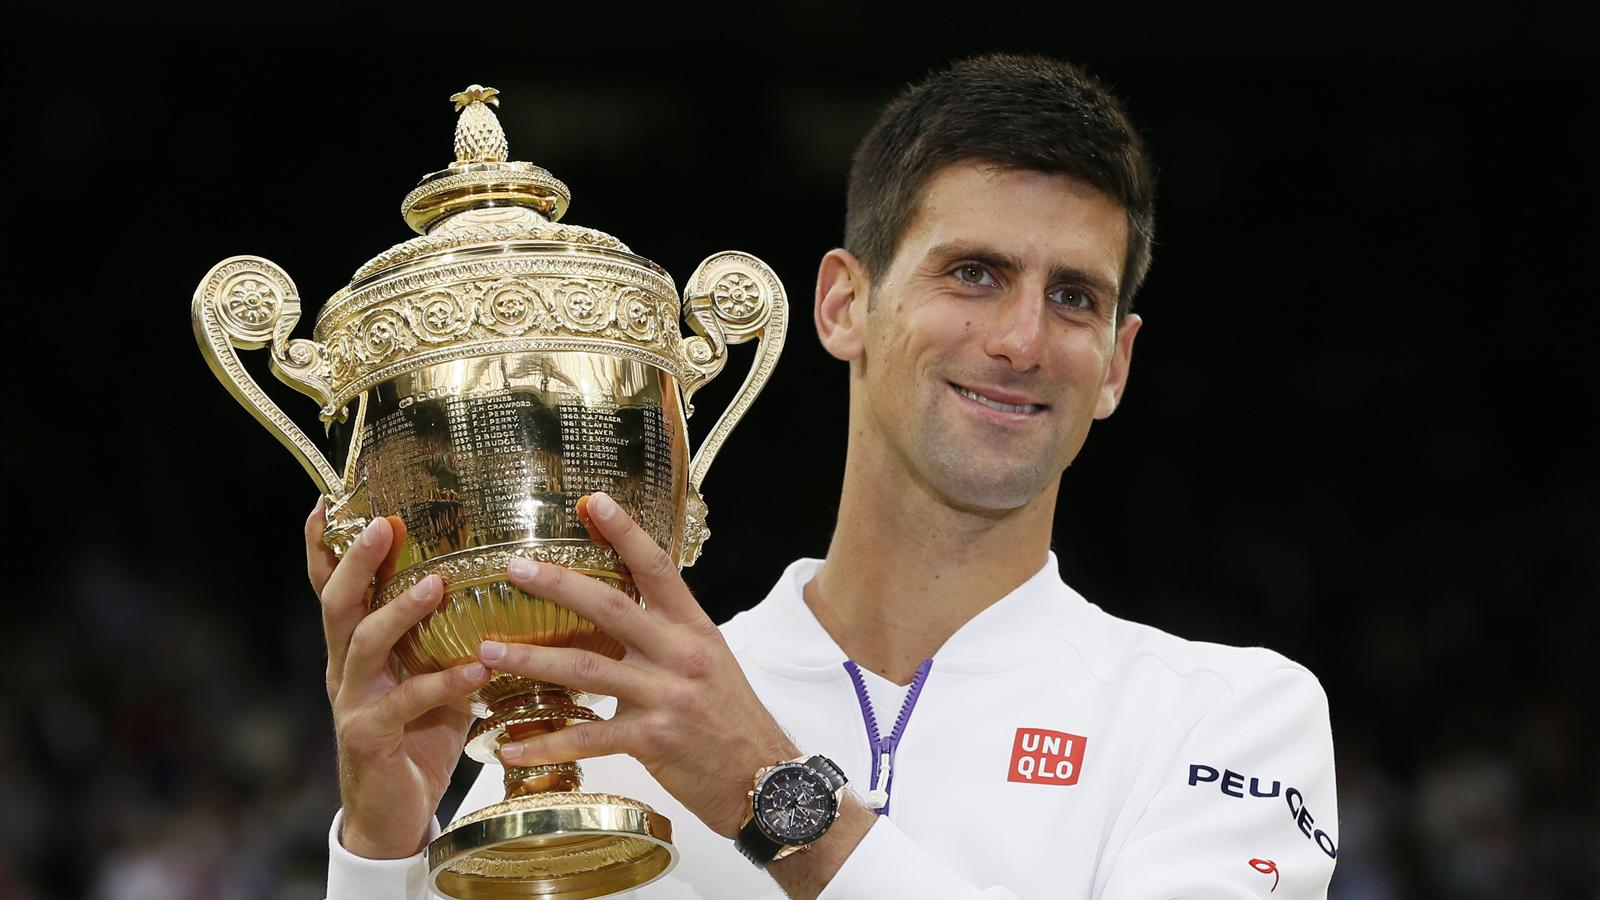 Novak Djokovic of Serbia shows off the trophy after winning his Men's Singles Final match against Roger Federer of Switzerland at the Wimbledon Tennis Championships in London, July 12, 2015. REUTERS/Stefan Wermuth